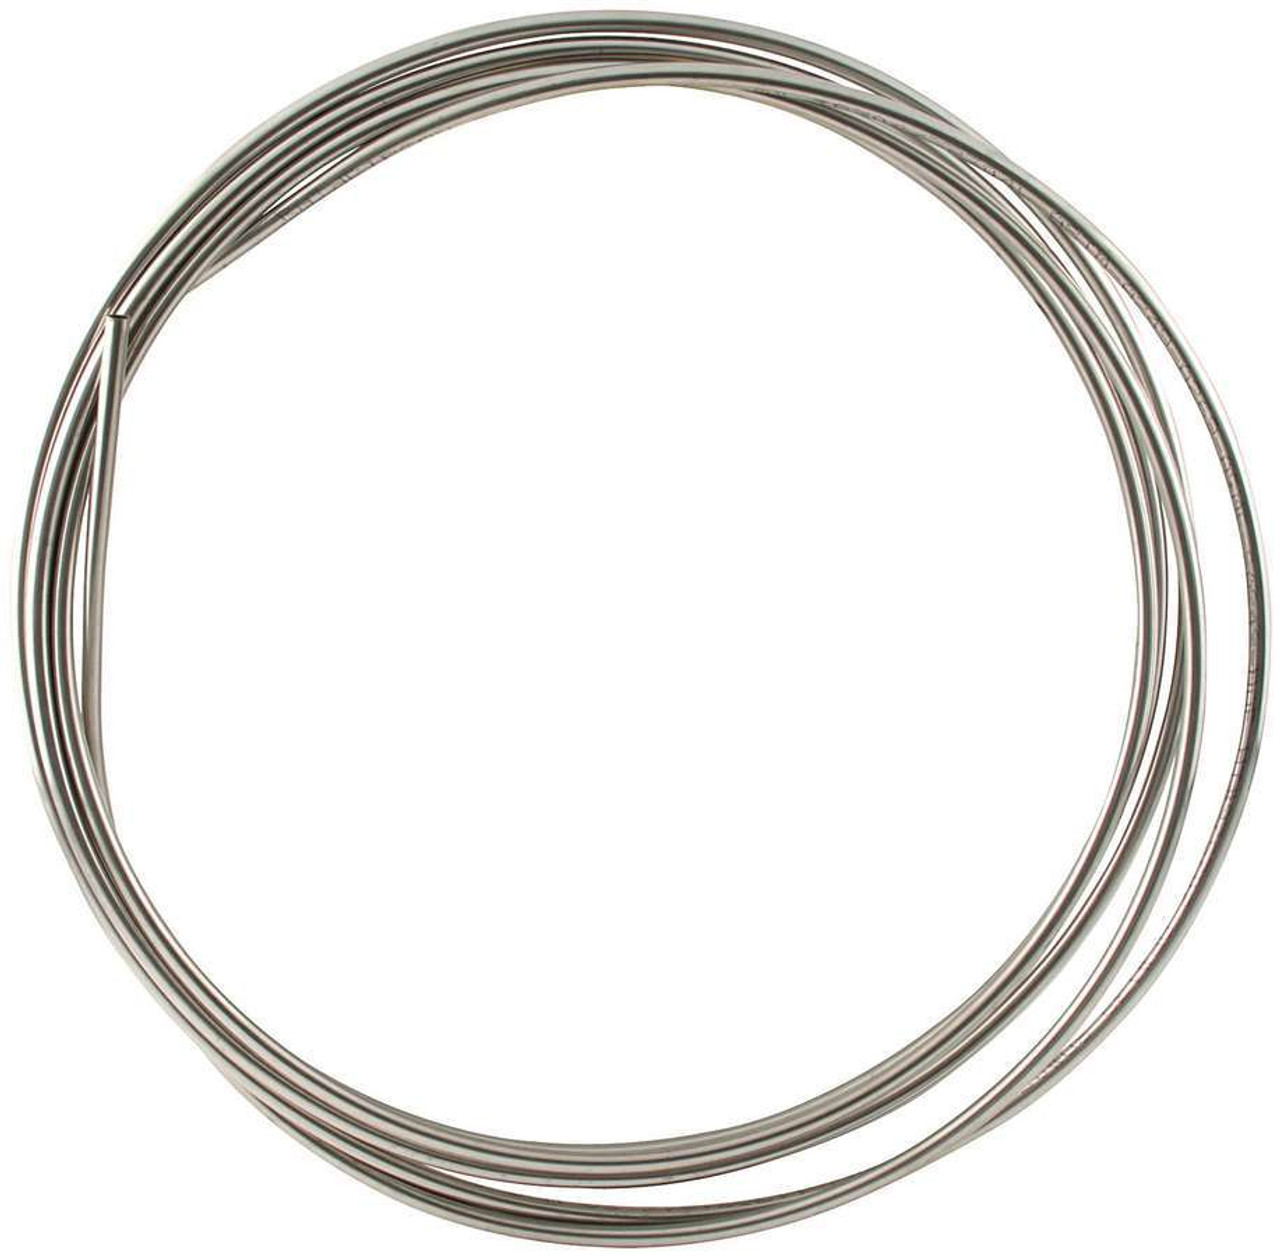 Allstar ALL48308 20 3//16 Diameter Stainless Steel Coiled Tubing Brake Line